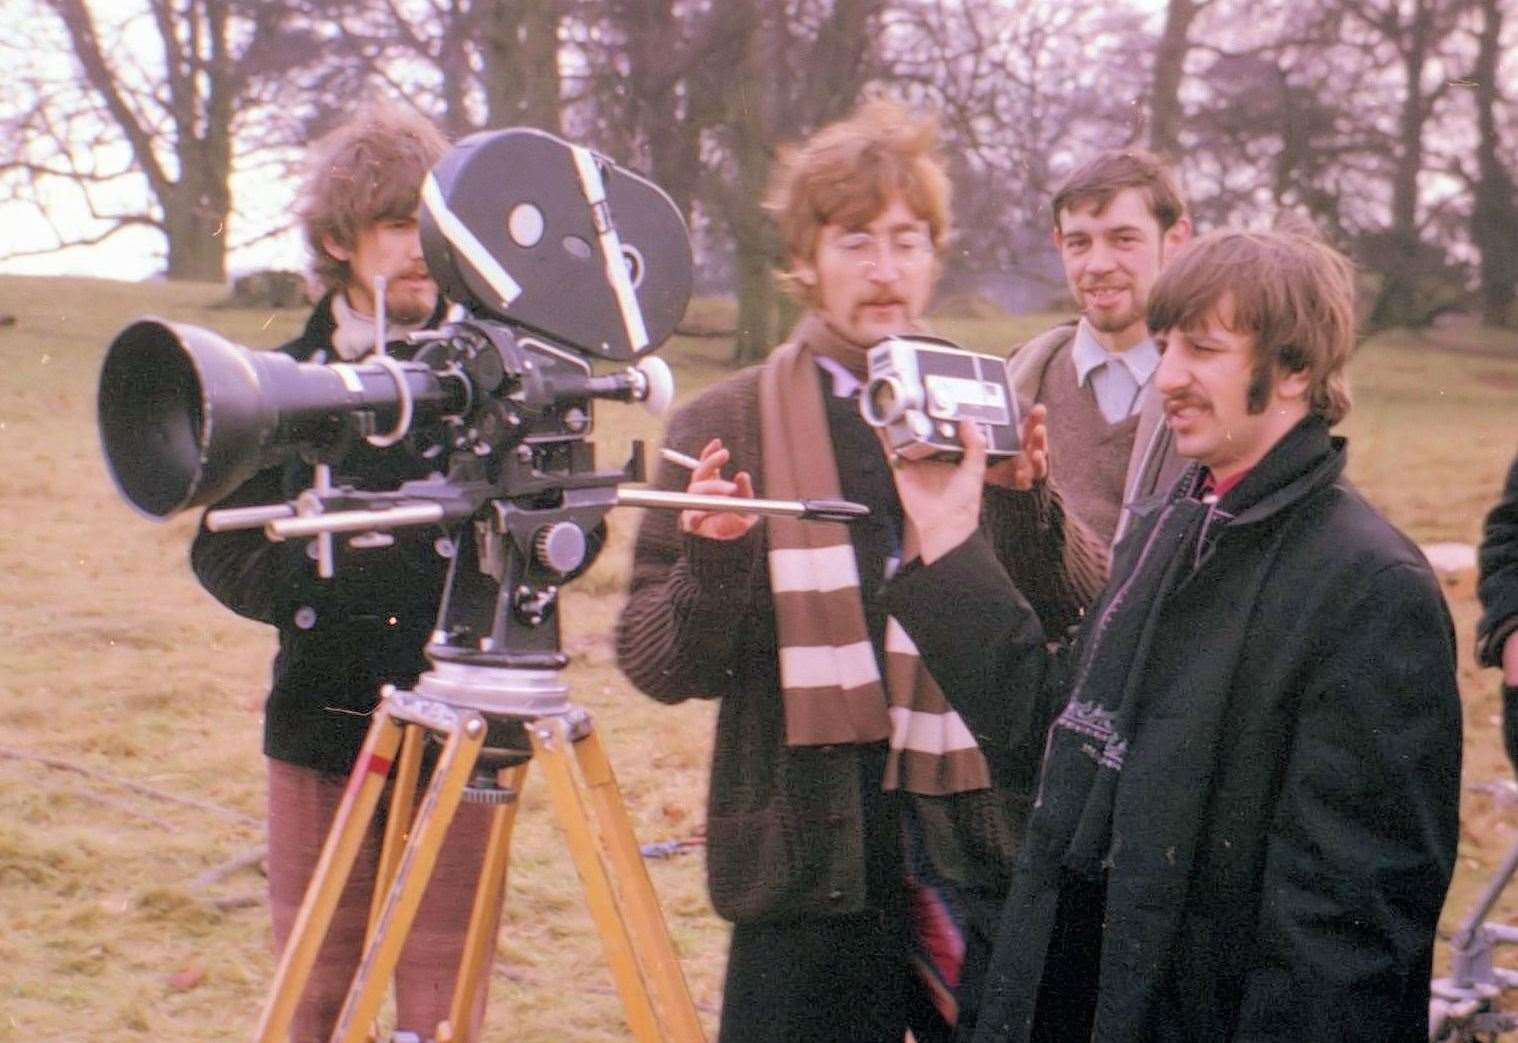 The Beatles when they visited Knole Park, Sevenoaks to shoot promotional films for Penny Lane and Strawberry Fields Forever in January 1967. Picture: Tracks